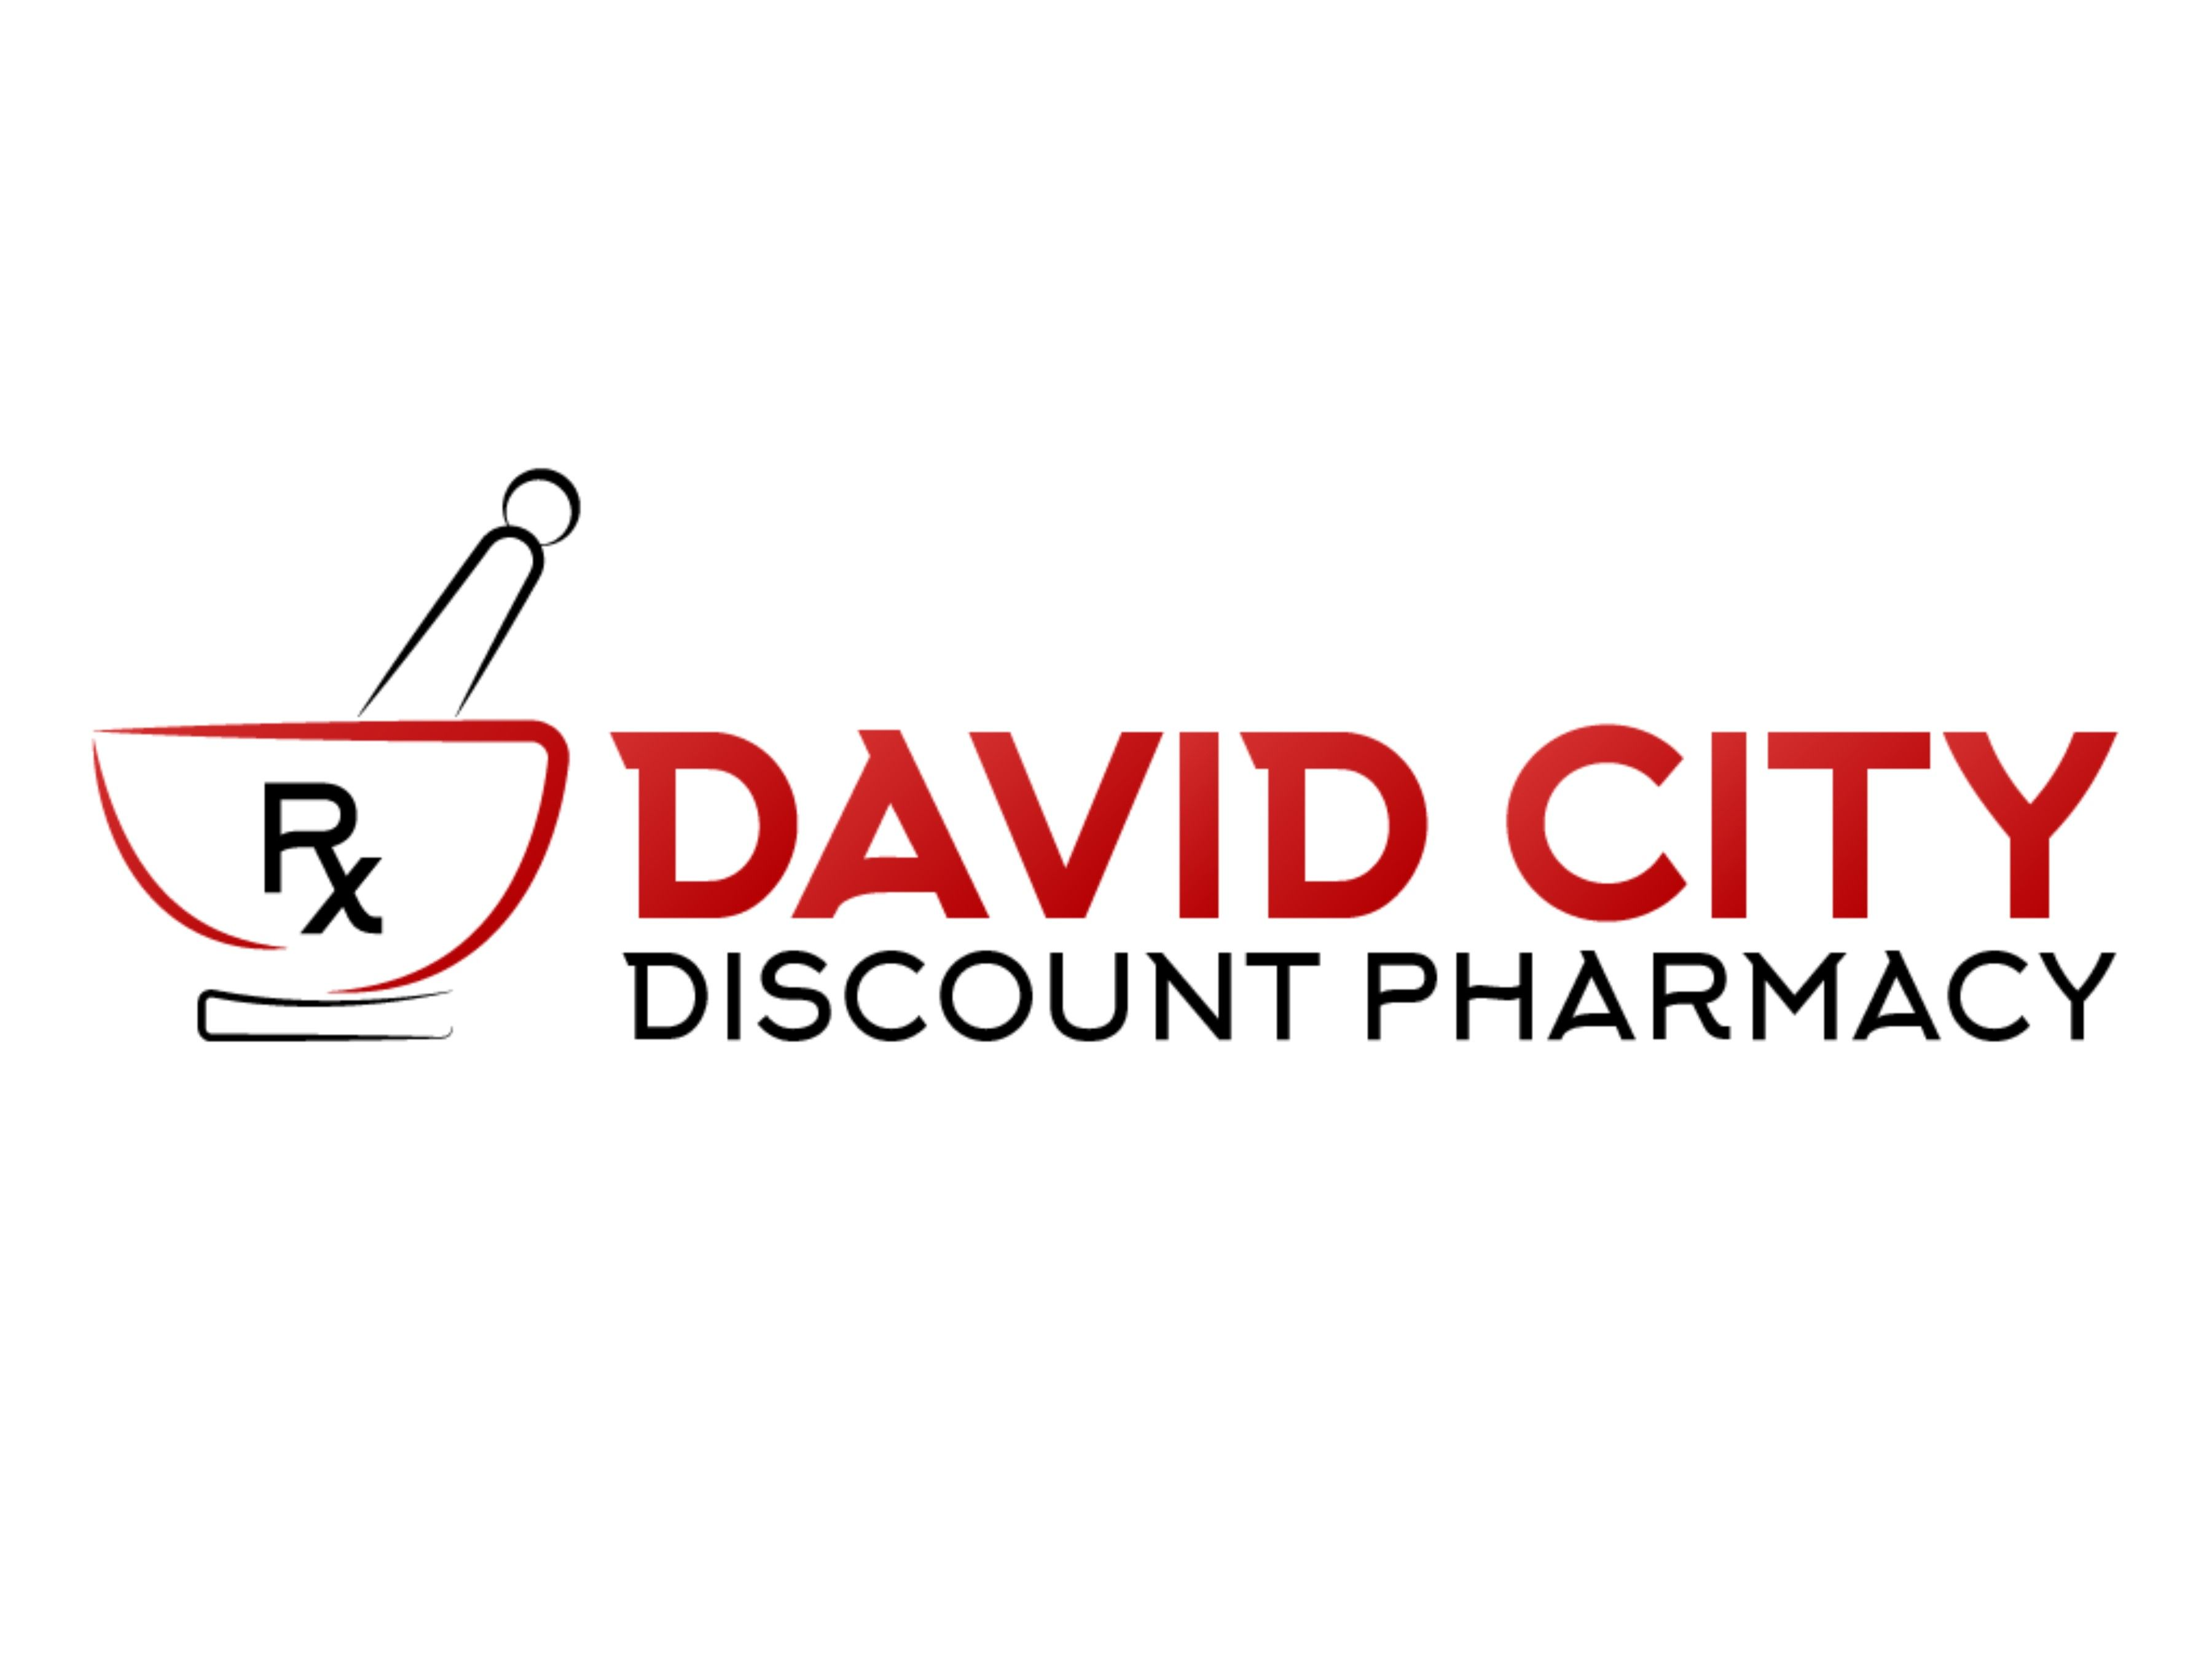 David City Discount Pharmacy